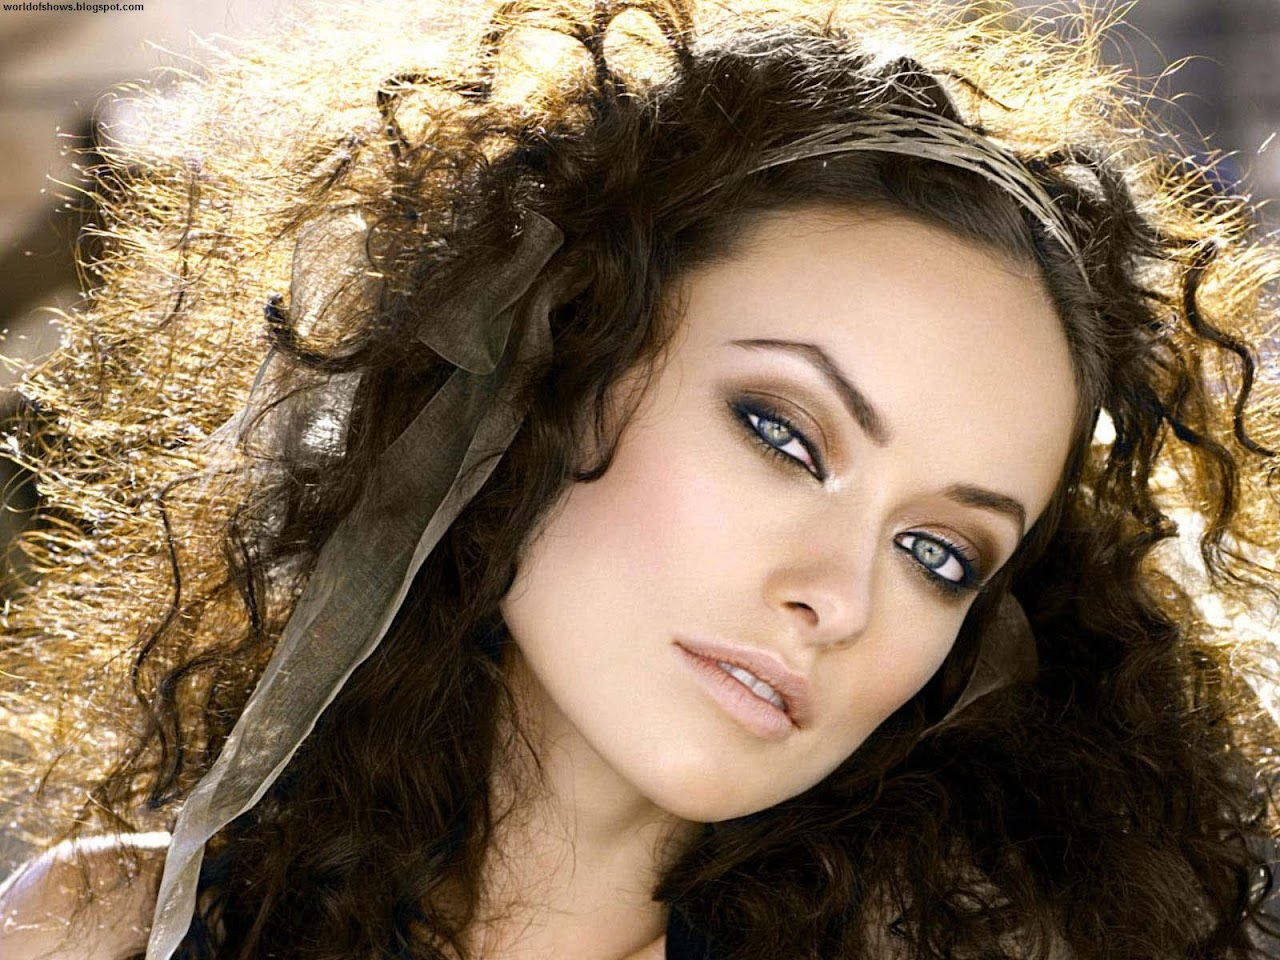 http://1.bp.blogspot.com/-GAGuSZph_Vo/UB7eS7NyJtI/AAAAAAAAHQg/04eiDQXRBRc/s1600/Olivia_Wilde_Scattered_Hair_Beautiful_Eyes_Sexy_American_Actress_And_Fashion_Model_Hd_Desktop_Wallpaper_citiesandteams.blogspot.com.jpg